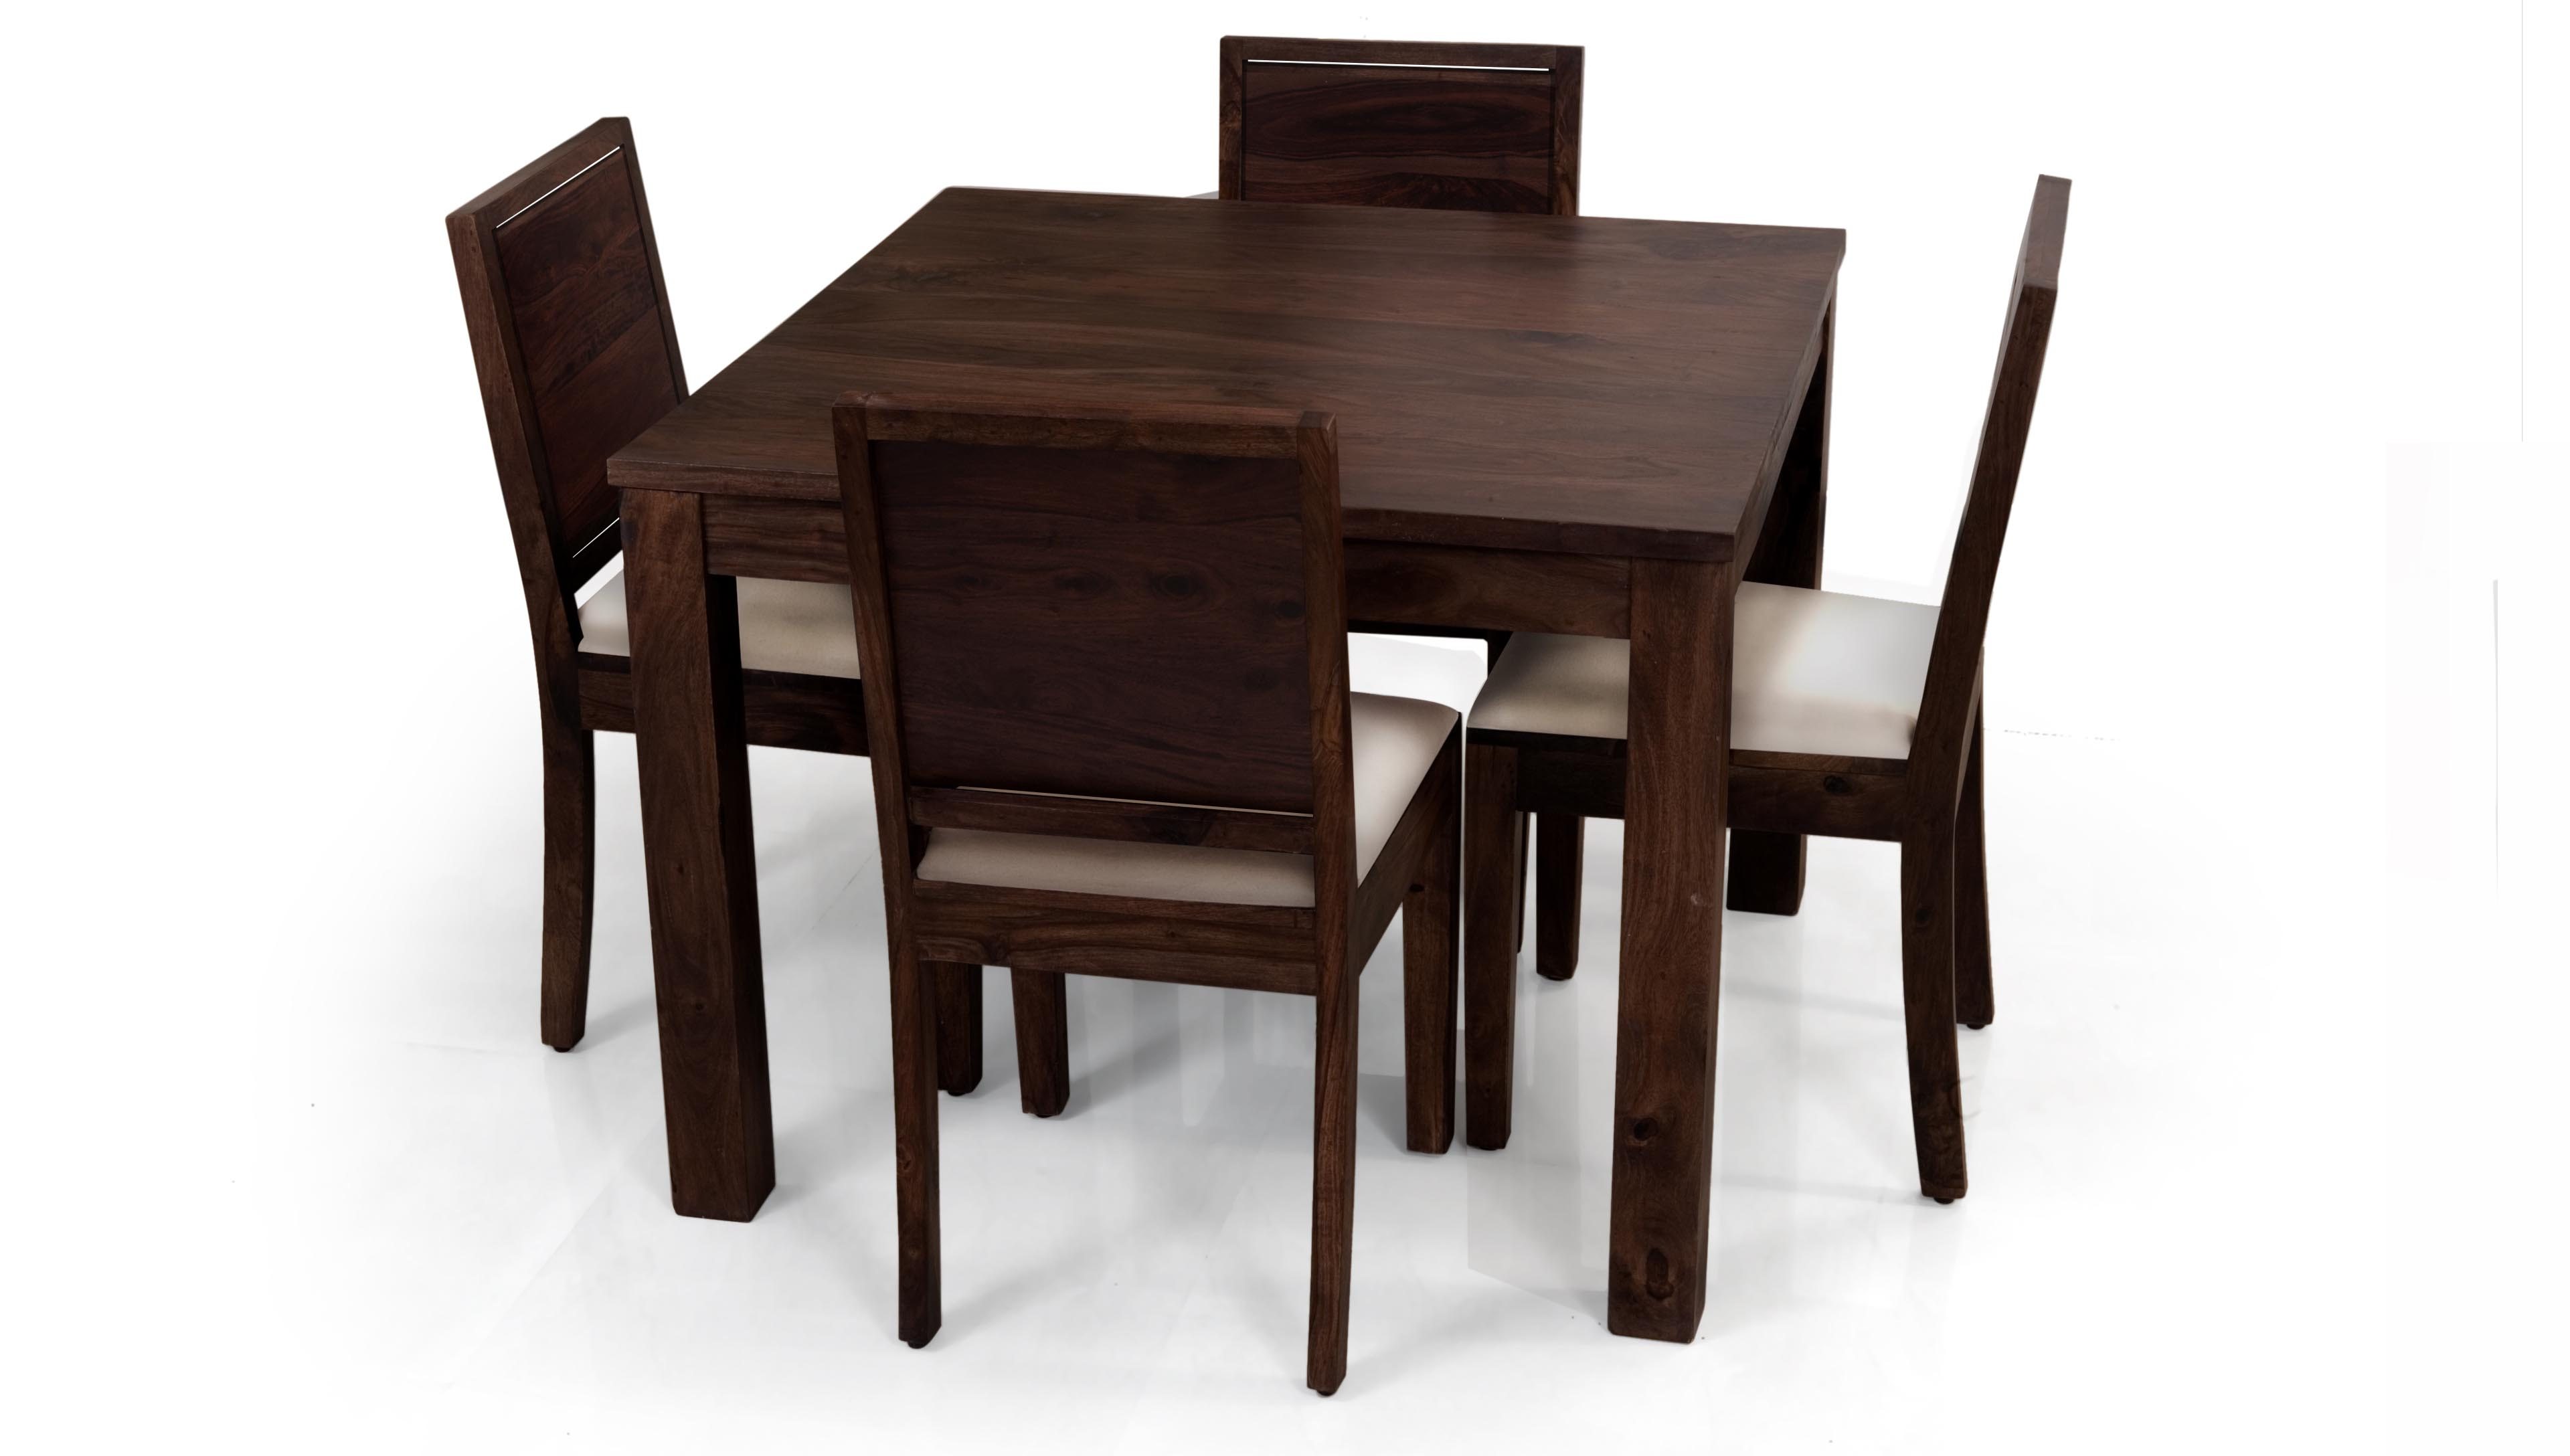 Casual Wooden Design Of Square Dining Room Table WIth Its 4 Chairs